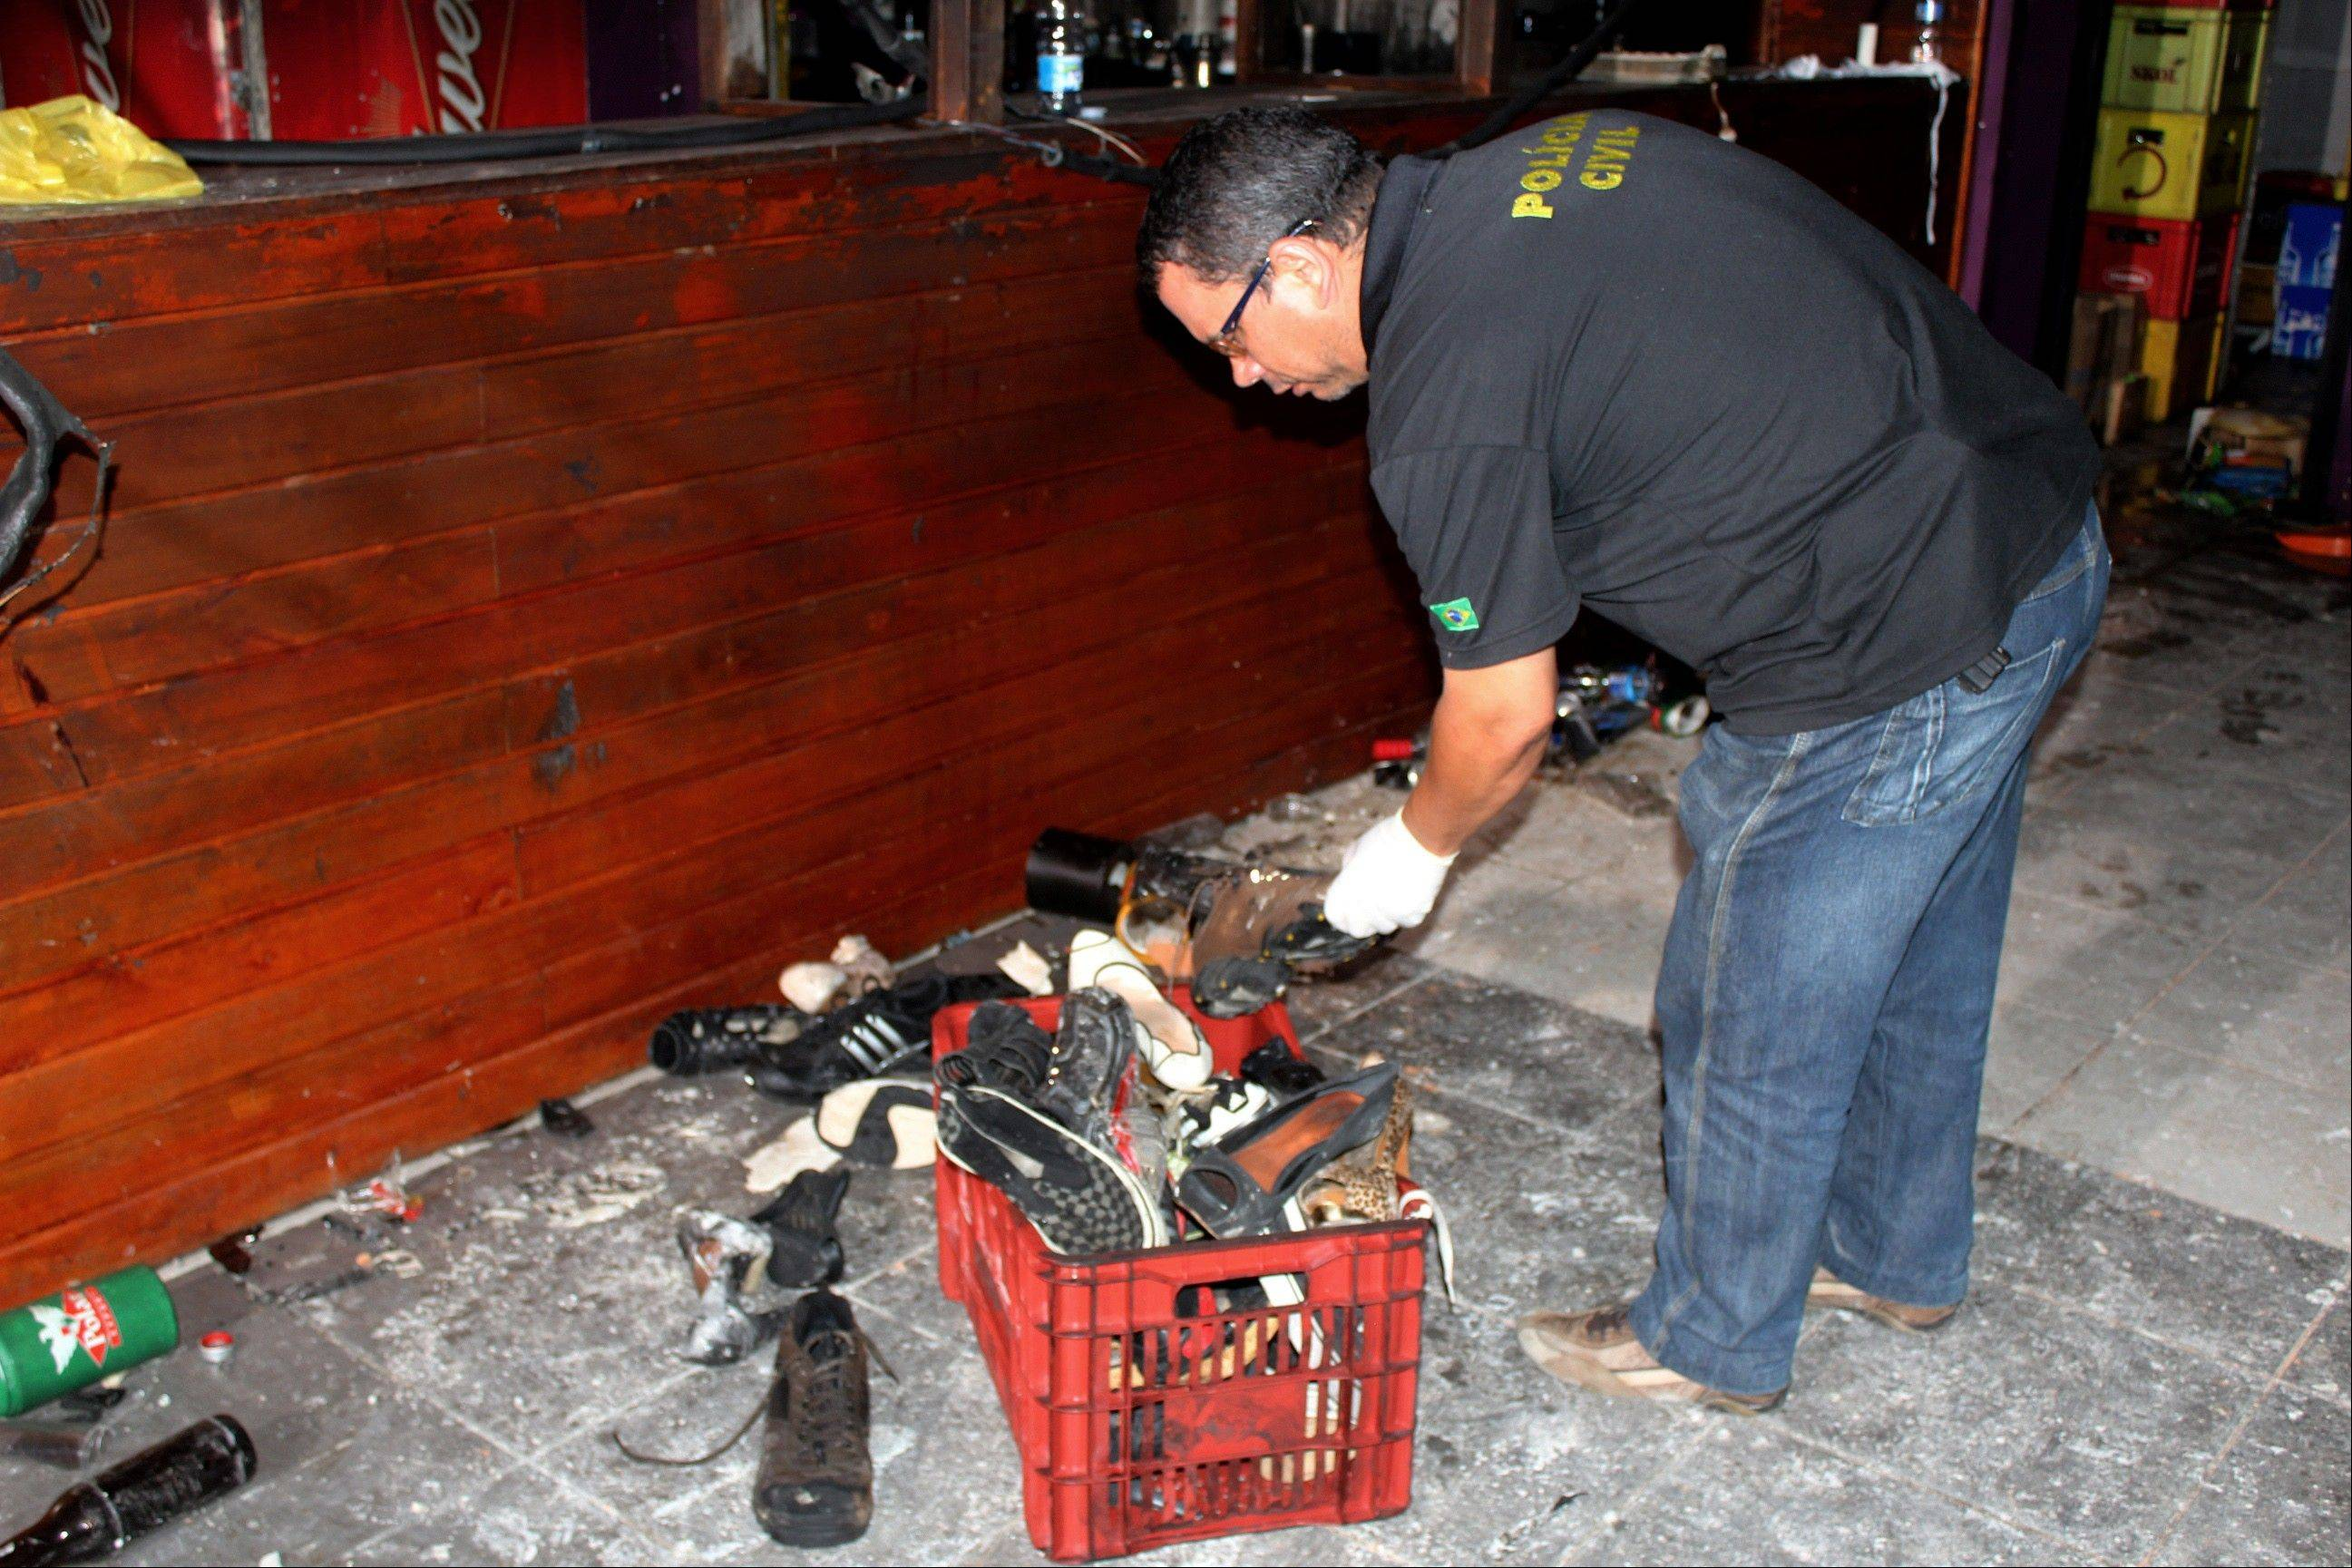 A police officer inspects victims' belongings after a fire at the Kiss nightclub in Santa Maria City, Rio Grande do Sul state, Brazil, Tuesday, Jan. 29, 2012. The blaze began at around 2:30 a.m. local time on Sunday, during a performance by Gurizada Fandangueira, a country music band that had made the use of pyrotechnics a trademark of their shows.